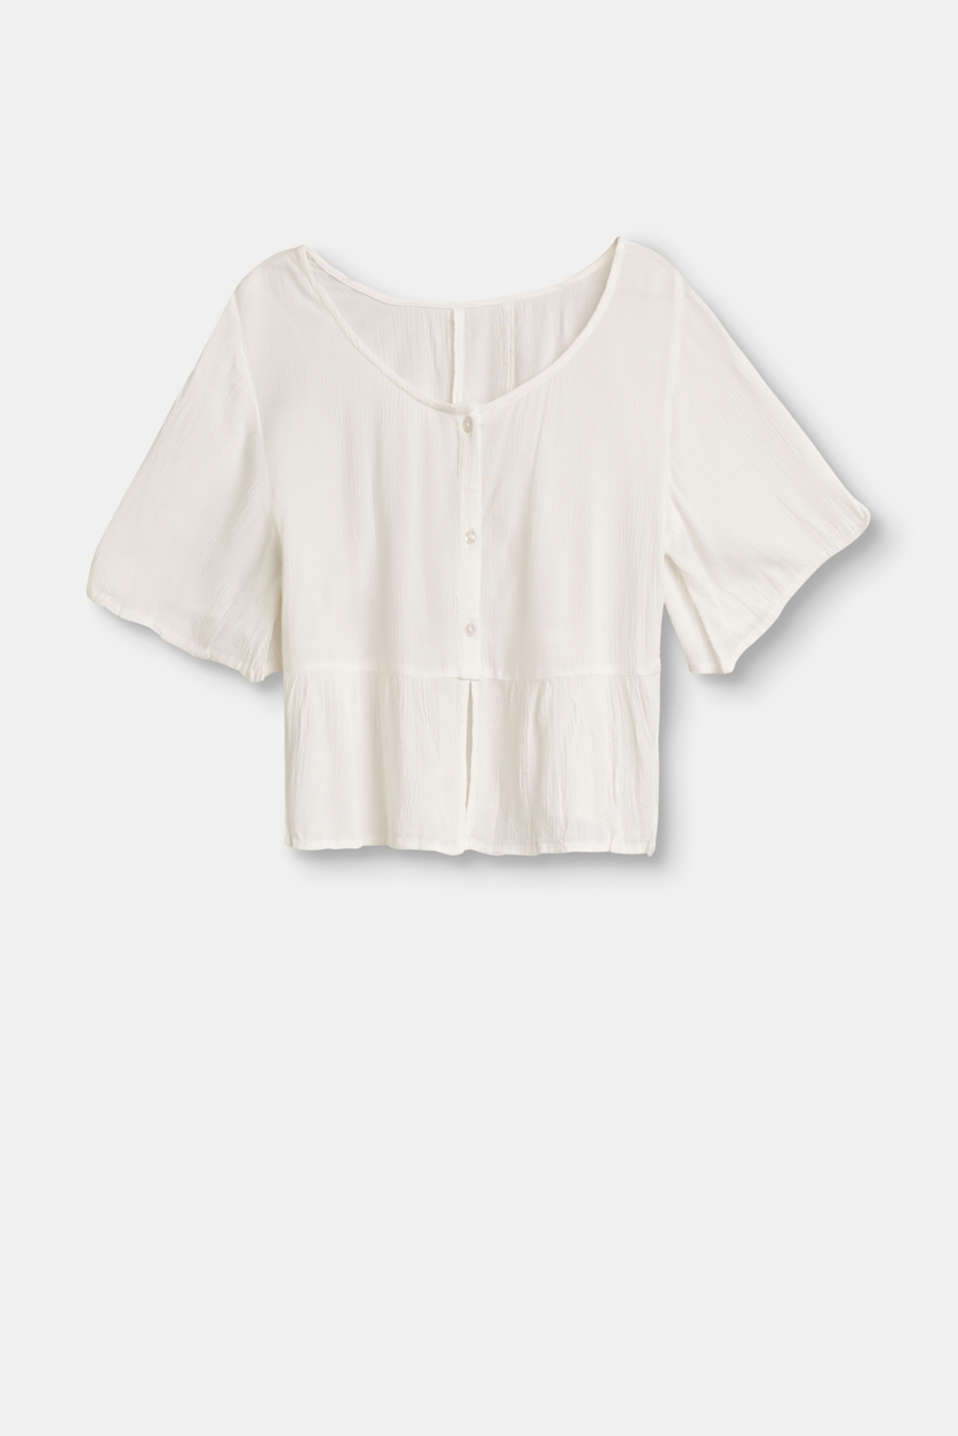 This airy, lightweight woven blouse with a flounce hem and button placket on the back is an absolute summer essential